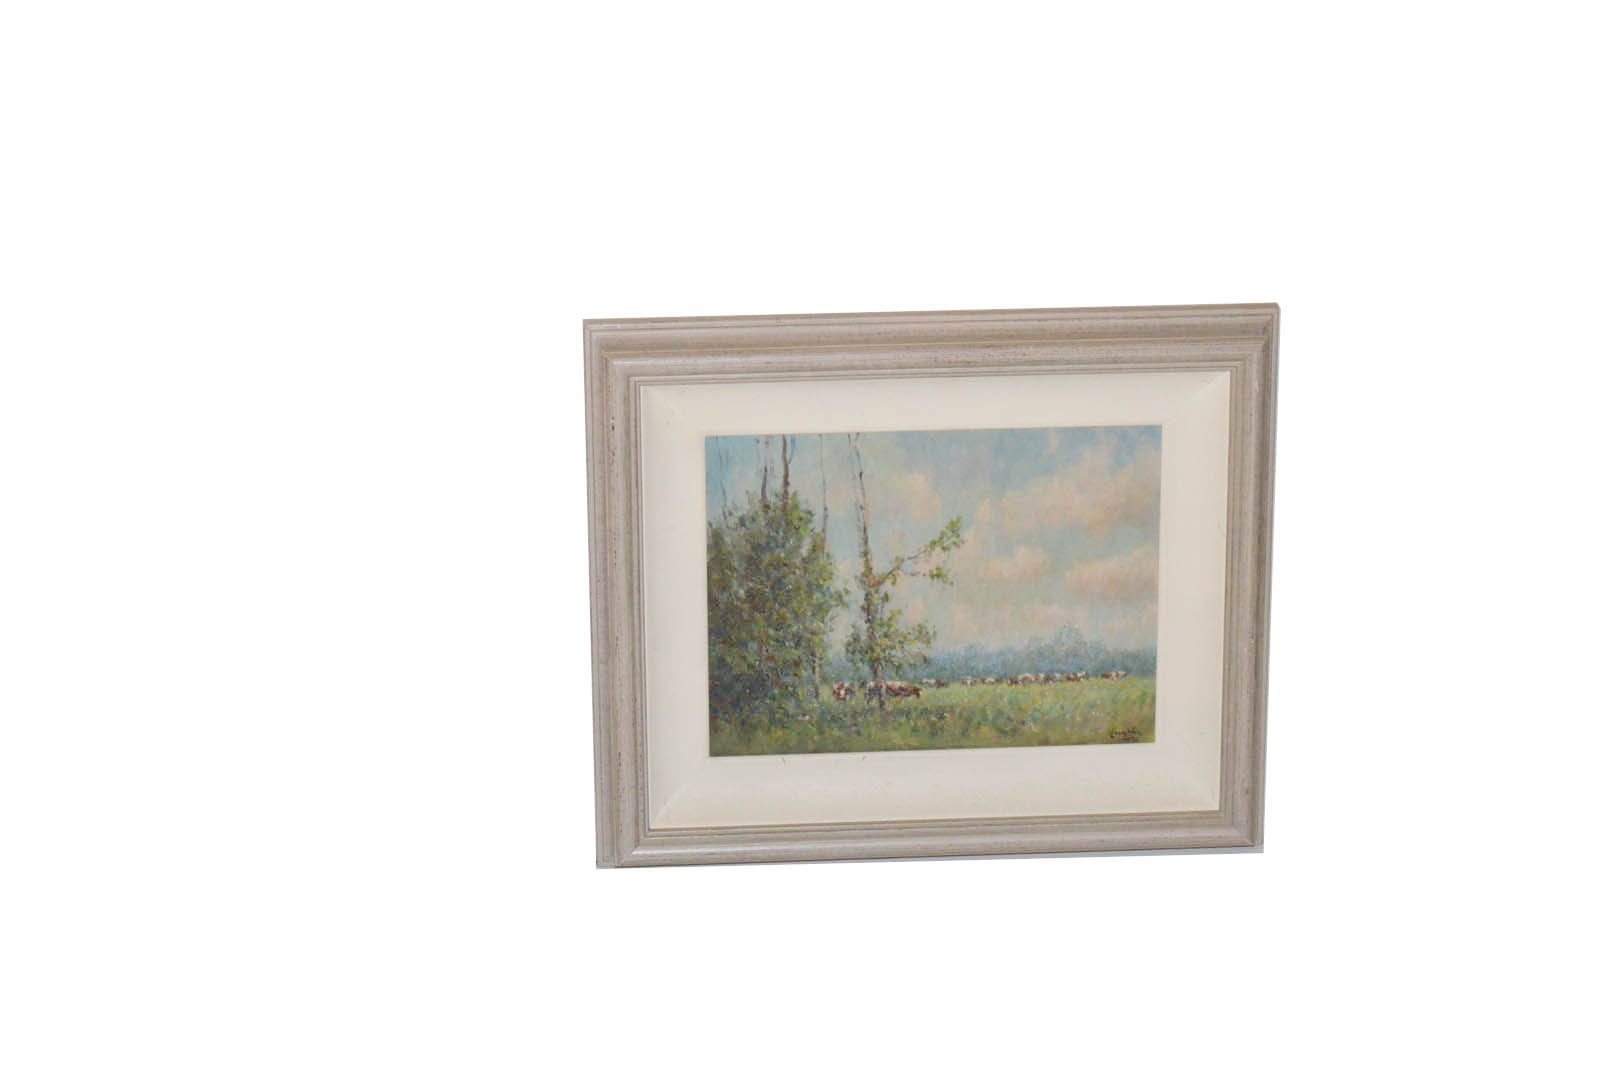 Lot 456 - An Oil Painting 'Summer' - Wilfred Haughton